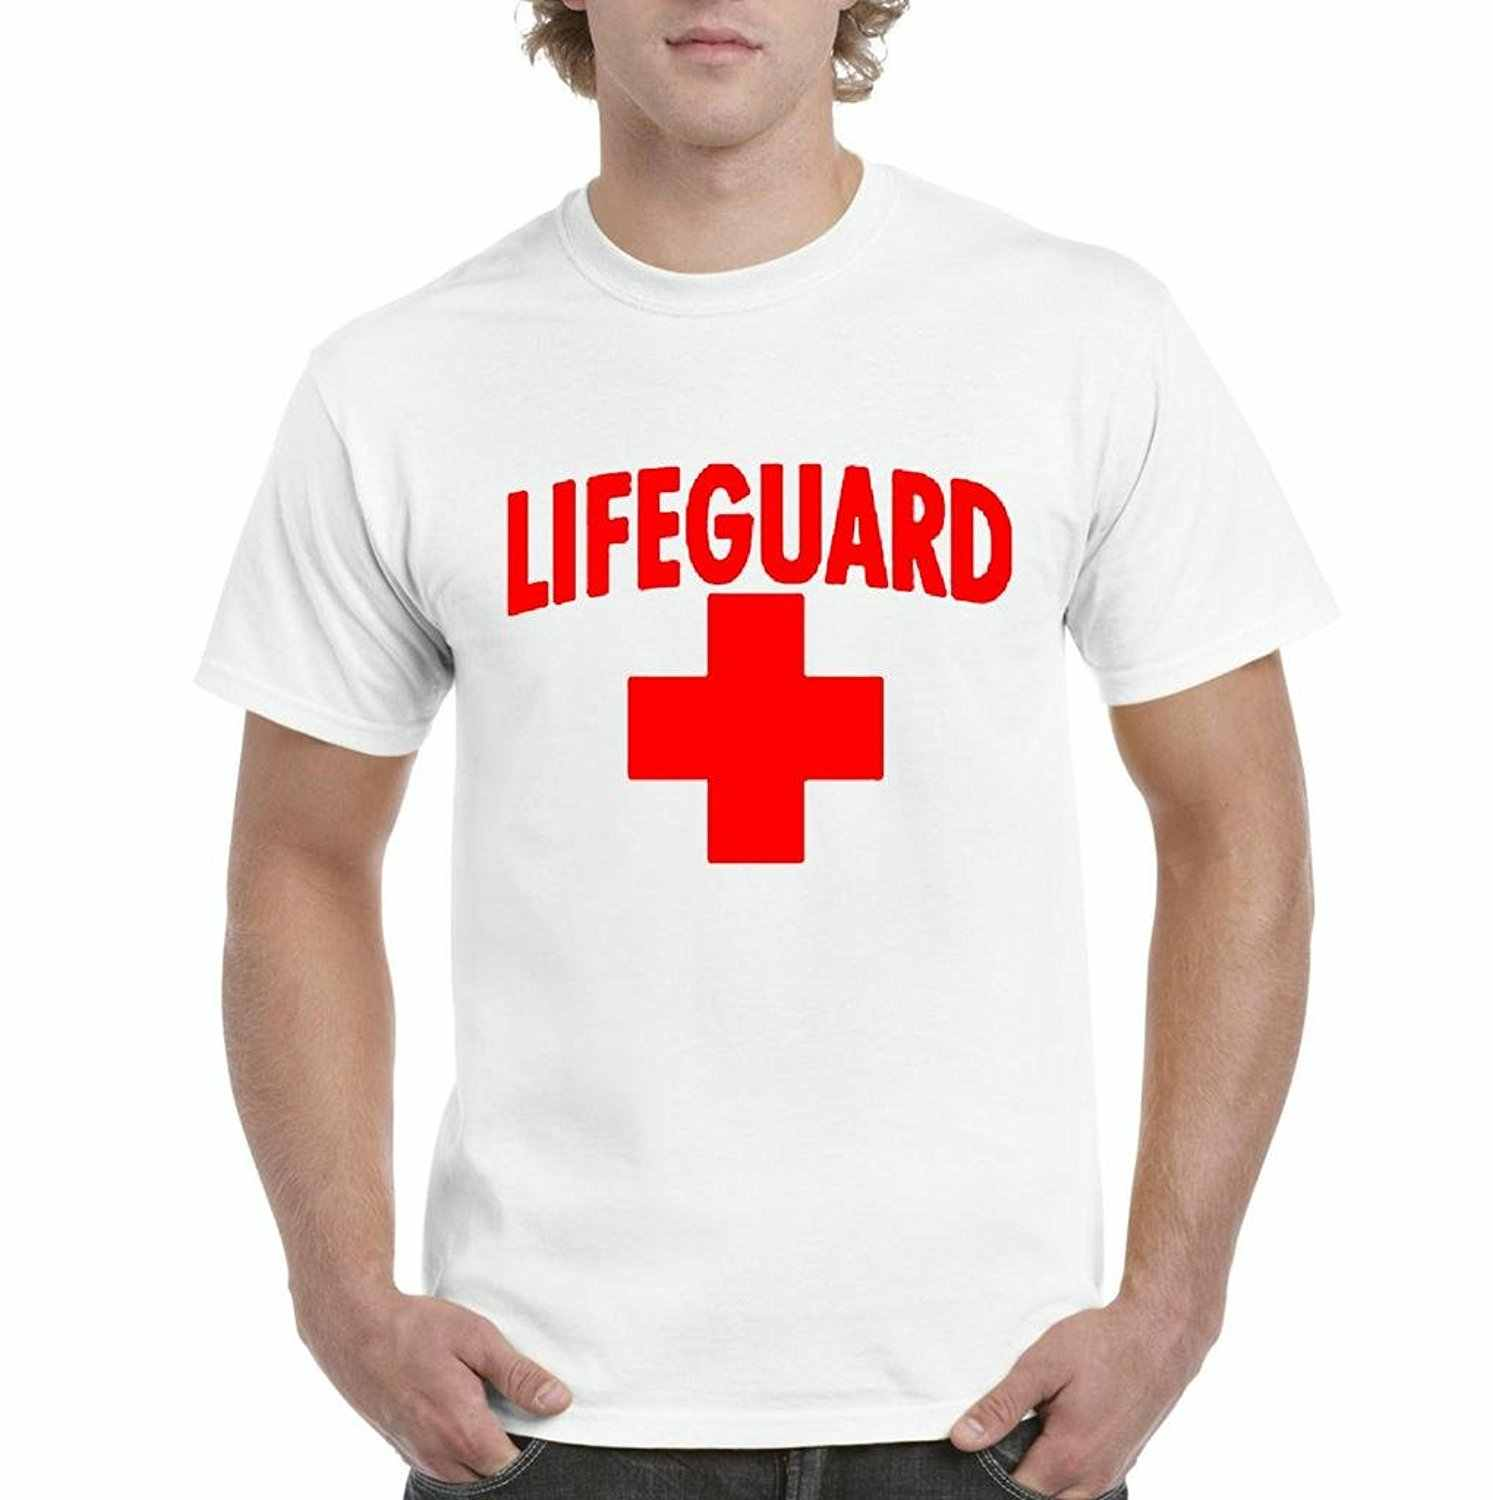 18d9a2d739d Detail Feedback Questions about Graphic Music Tees Lifeguard Red Cross Life  Guard In Red Mens T shirt TeeStretch Custom T Shirts No Minimum on ...